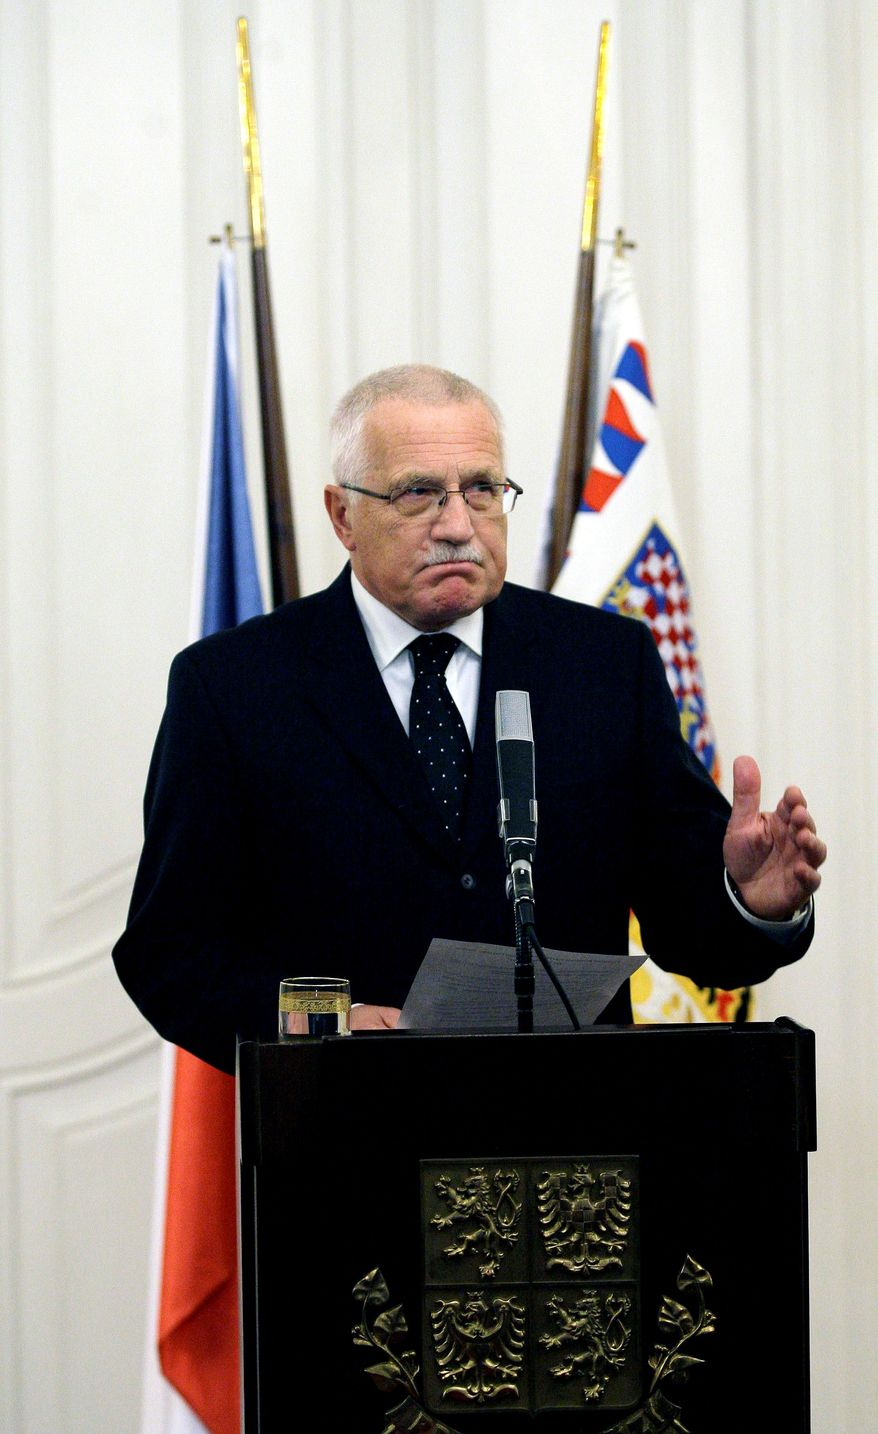 ASSOCIATED PRESS Vaclav Klaus, president of the Czech Republic, signs the Lisbon Treaty on Tuesday, expanding the powers of the European Union. The longtime holdout was the last of the 27 nations in the union to ratify the treaty.